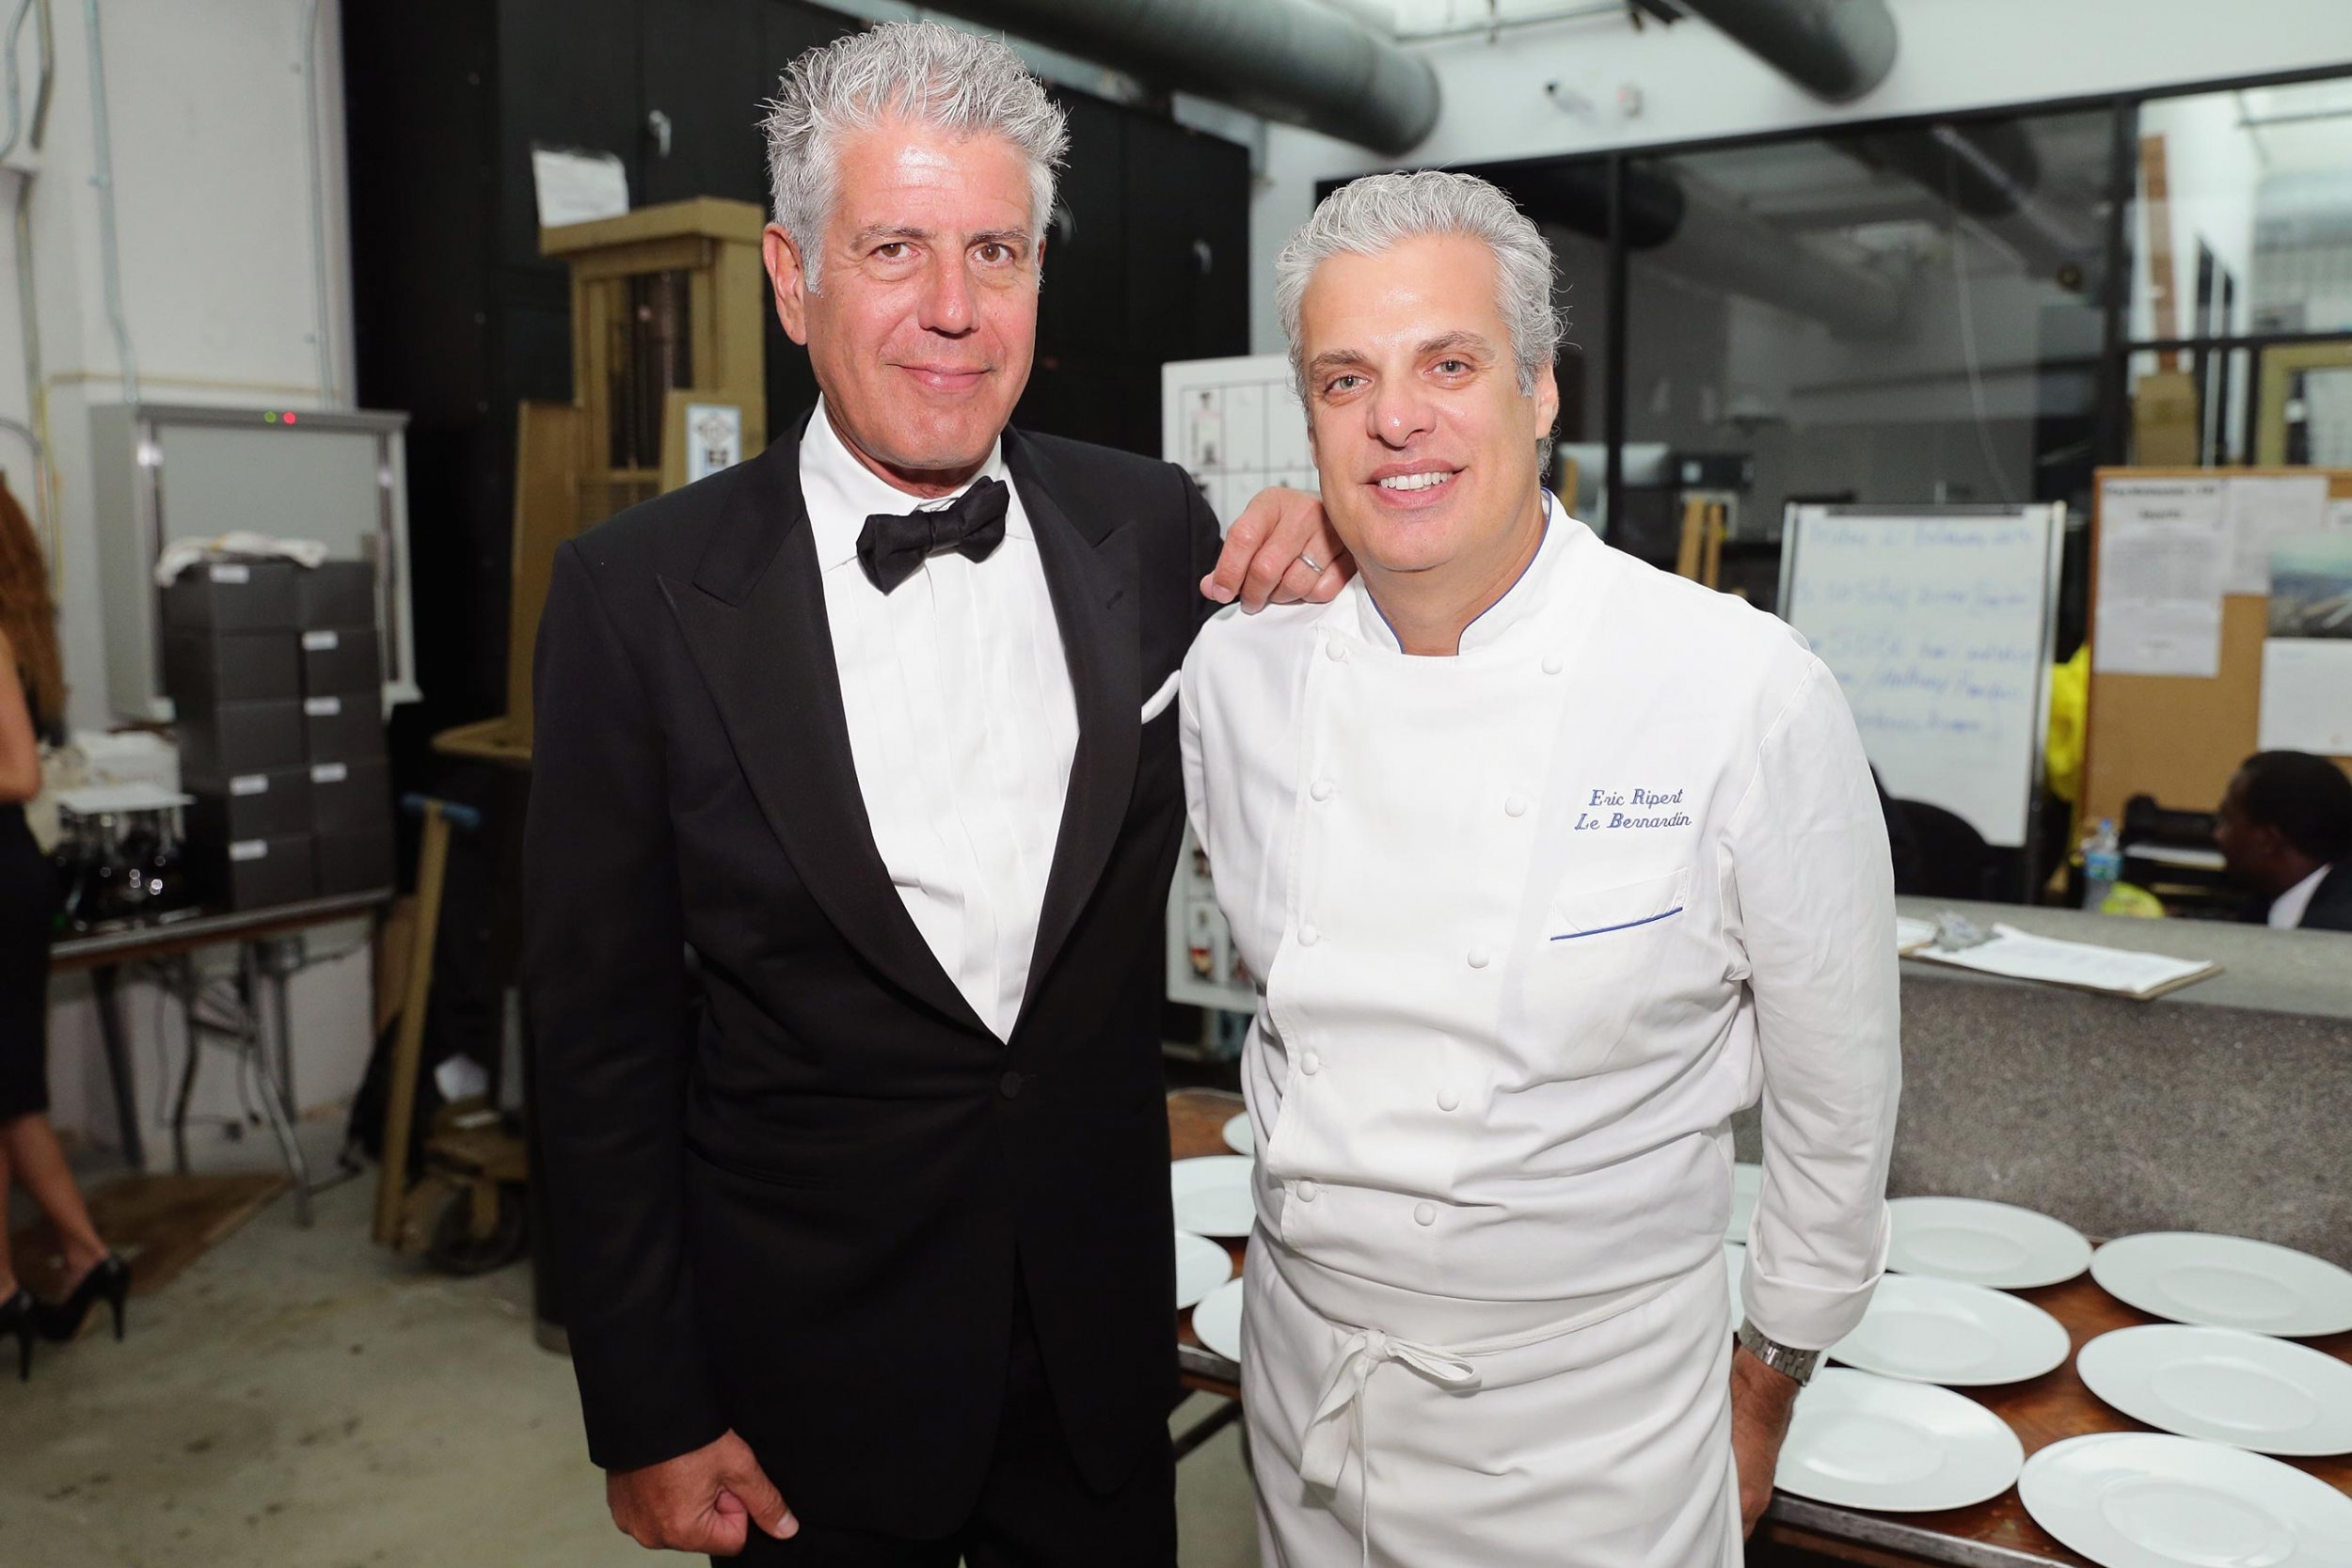 gettyimages-474090843 People Magazine and Getty Images Bourdain and Ripert Chefs